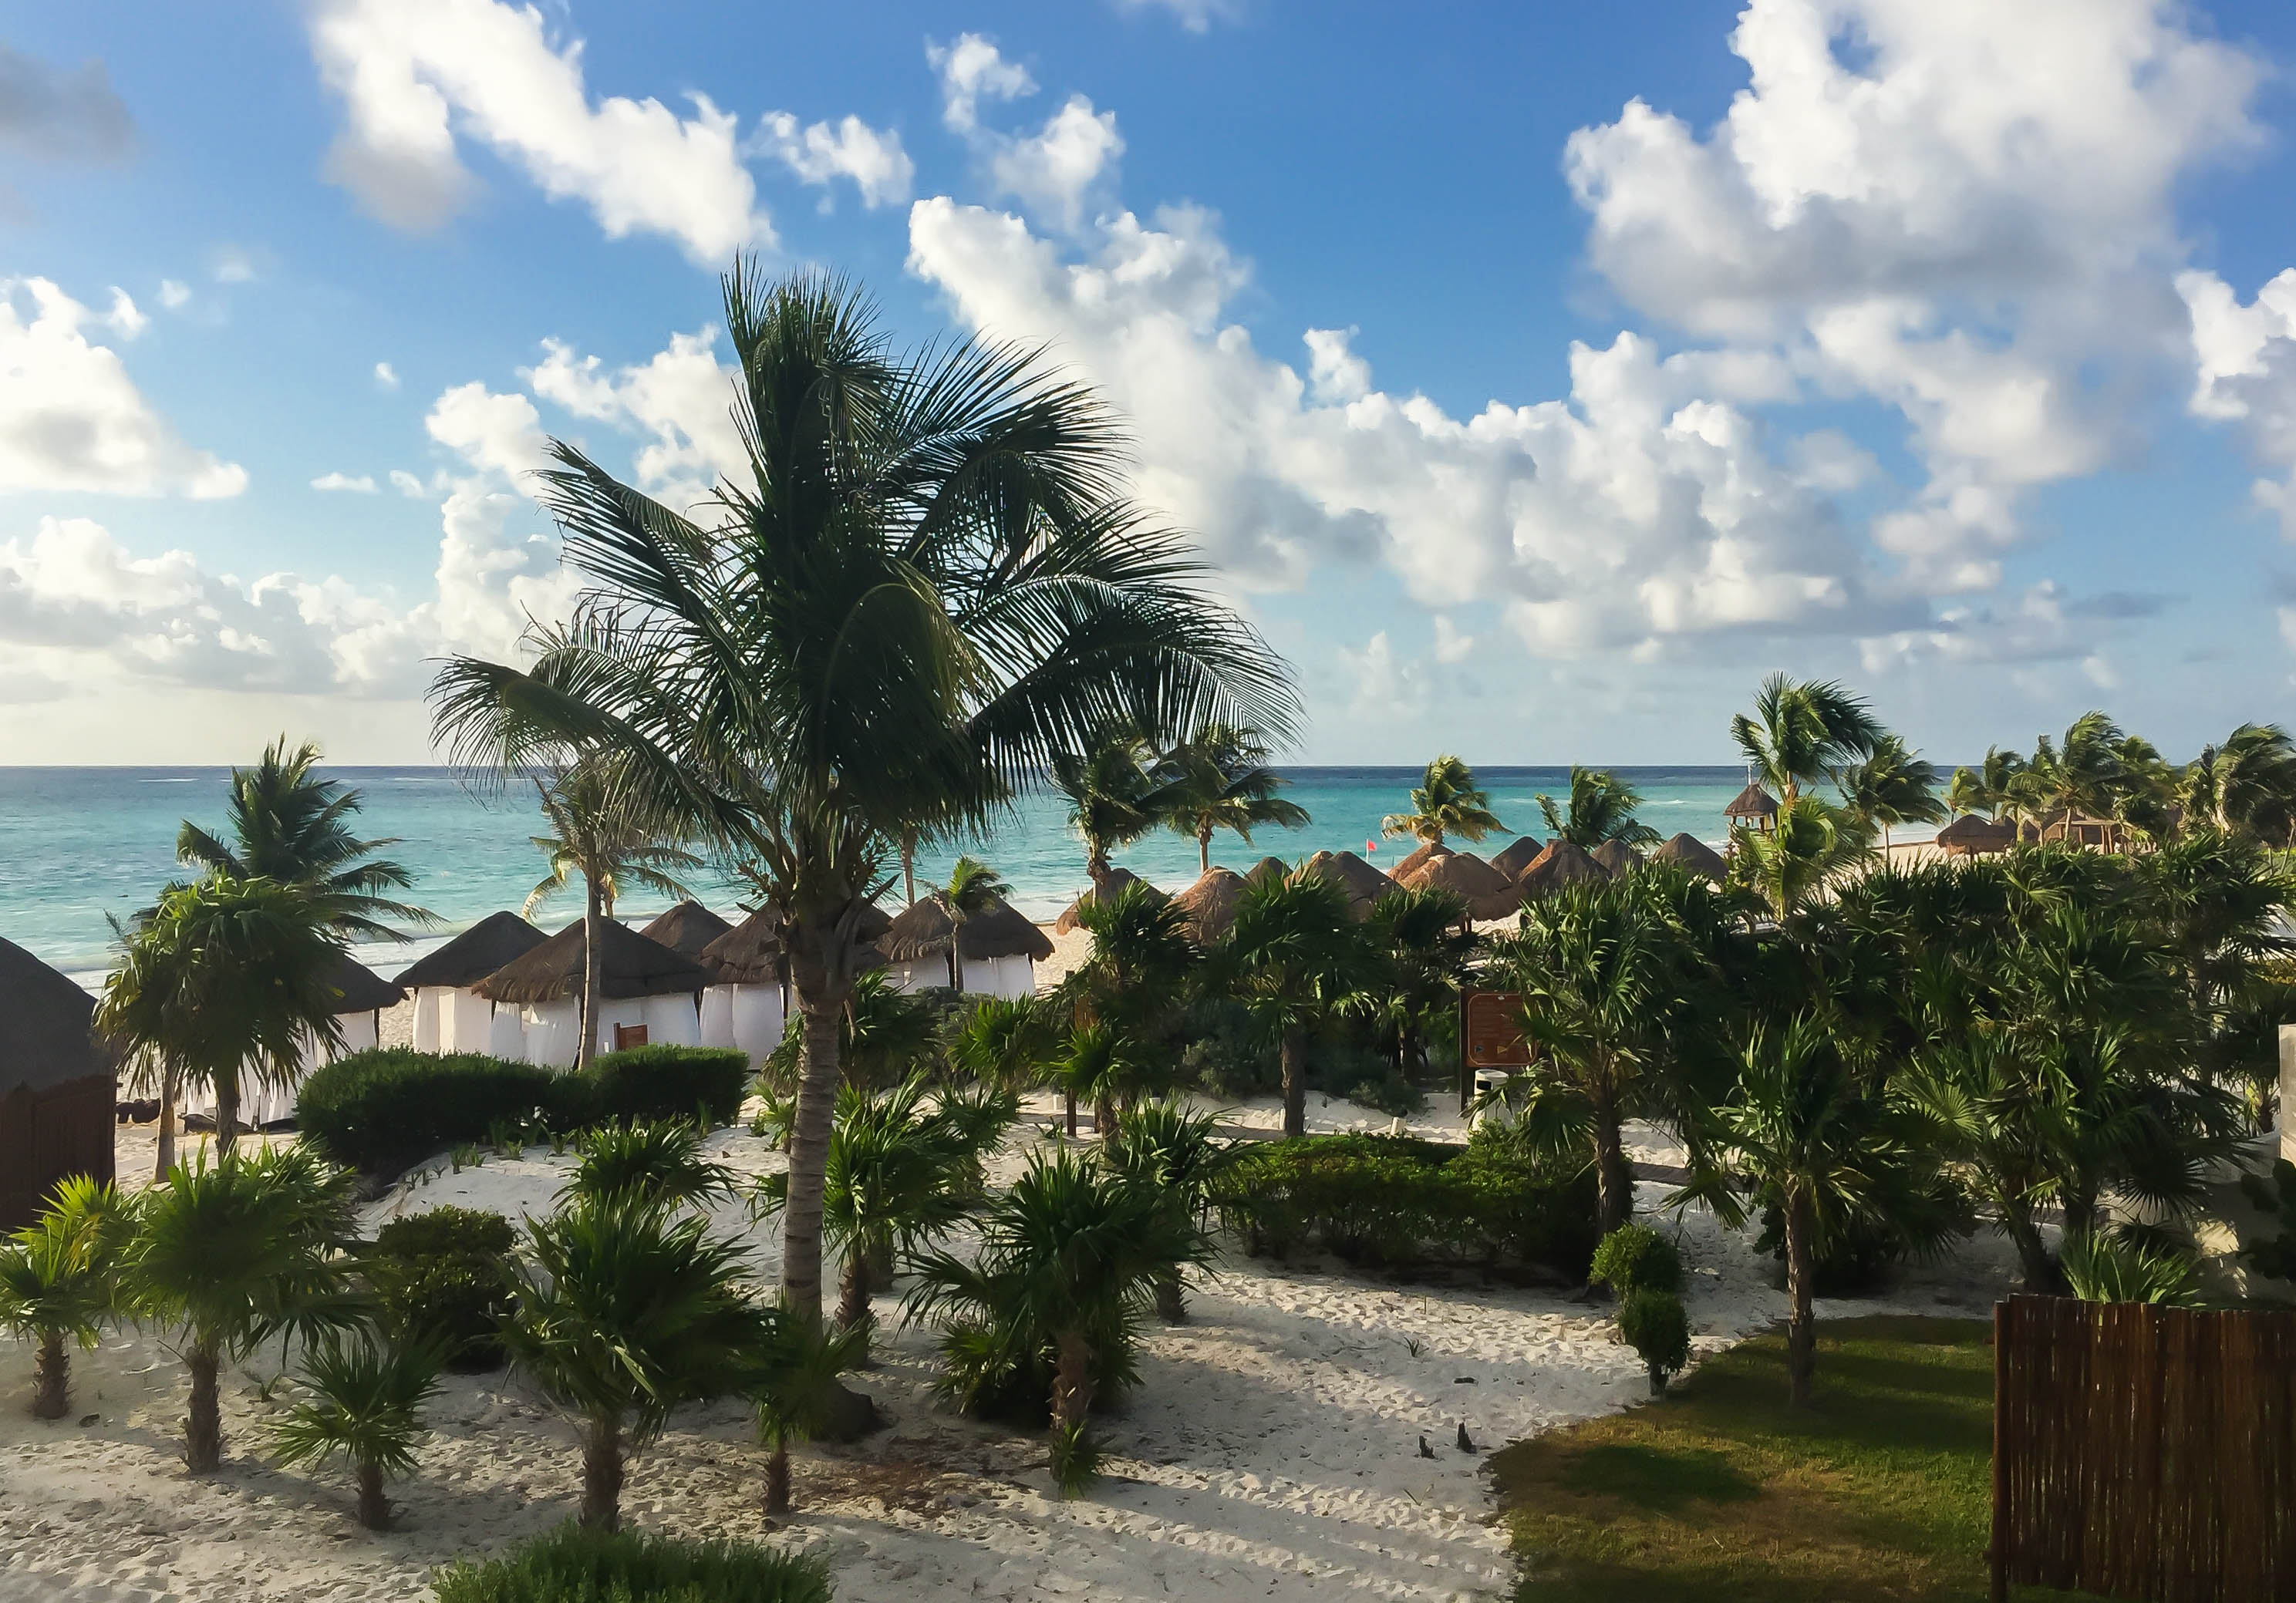 View from our balcony at Secrets Maroma Beach